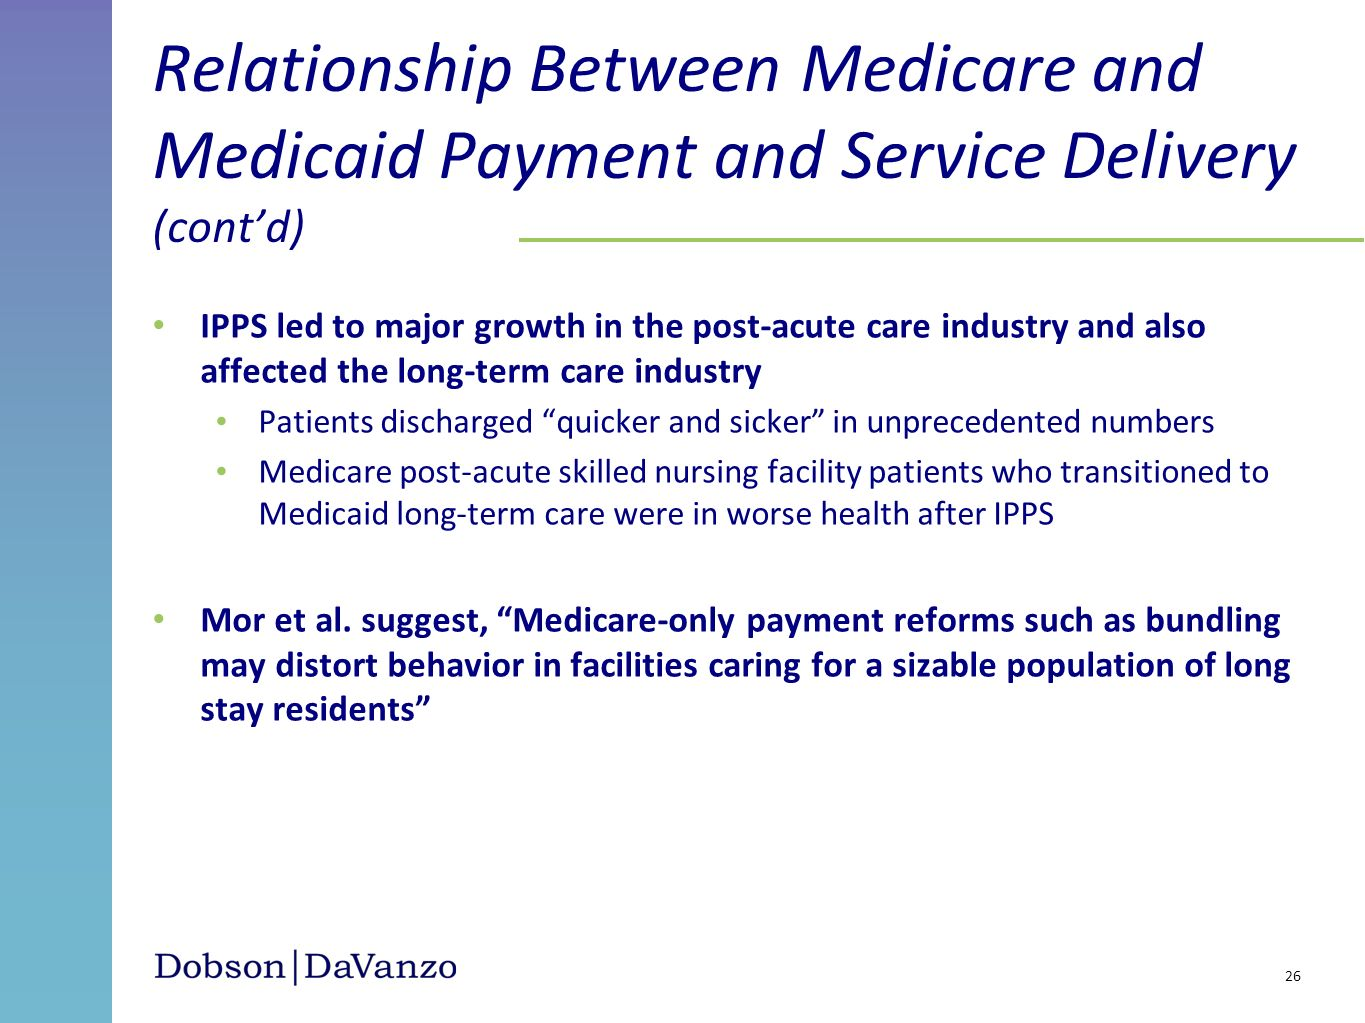 Relationship Between Medicare and Medicaid Payment and Service Delivery (cont'd)